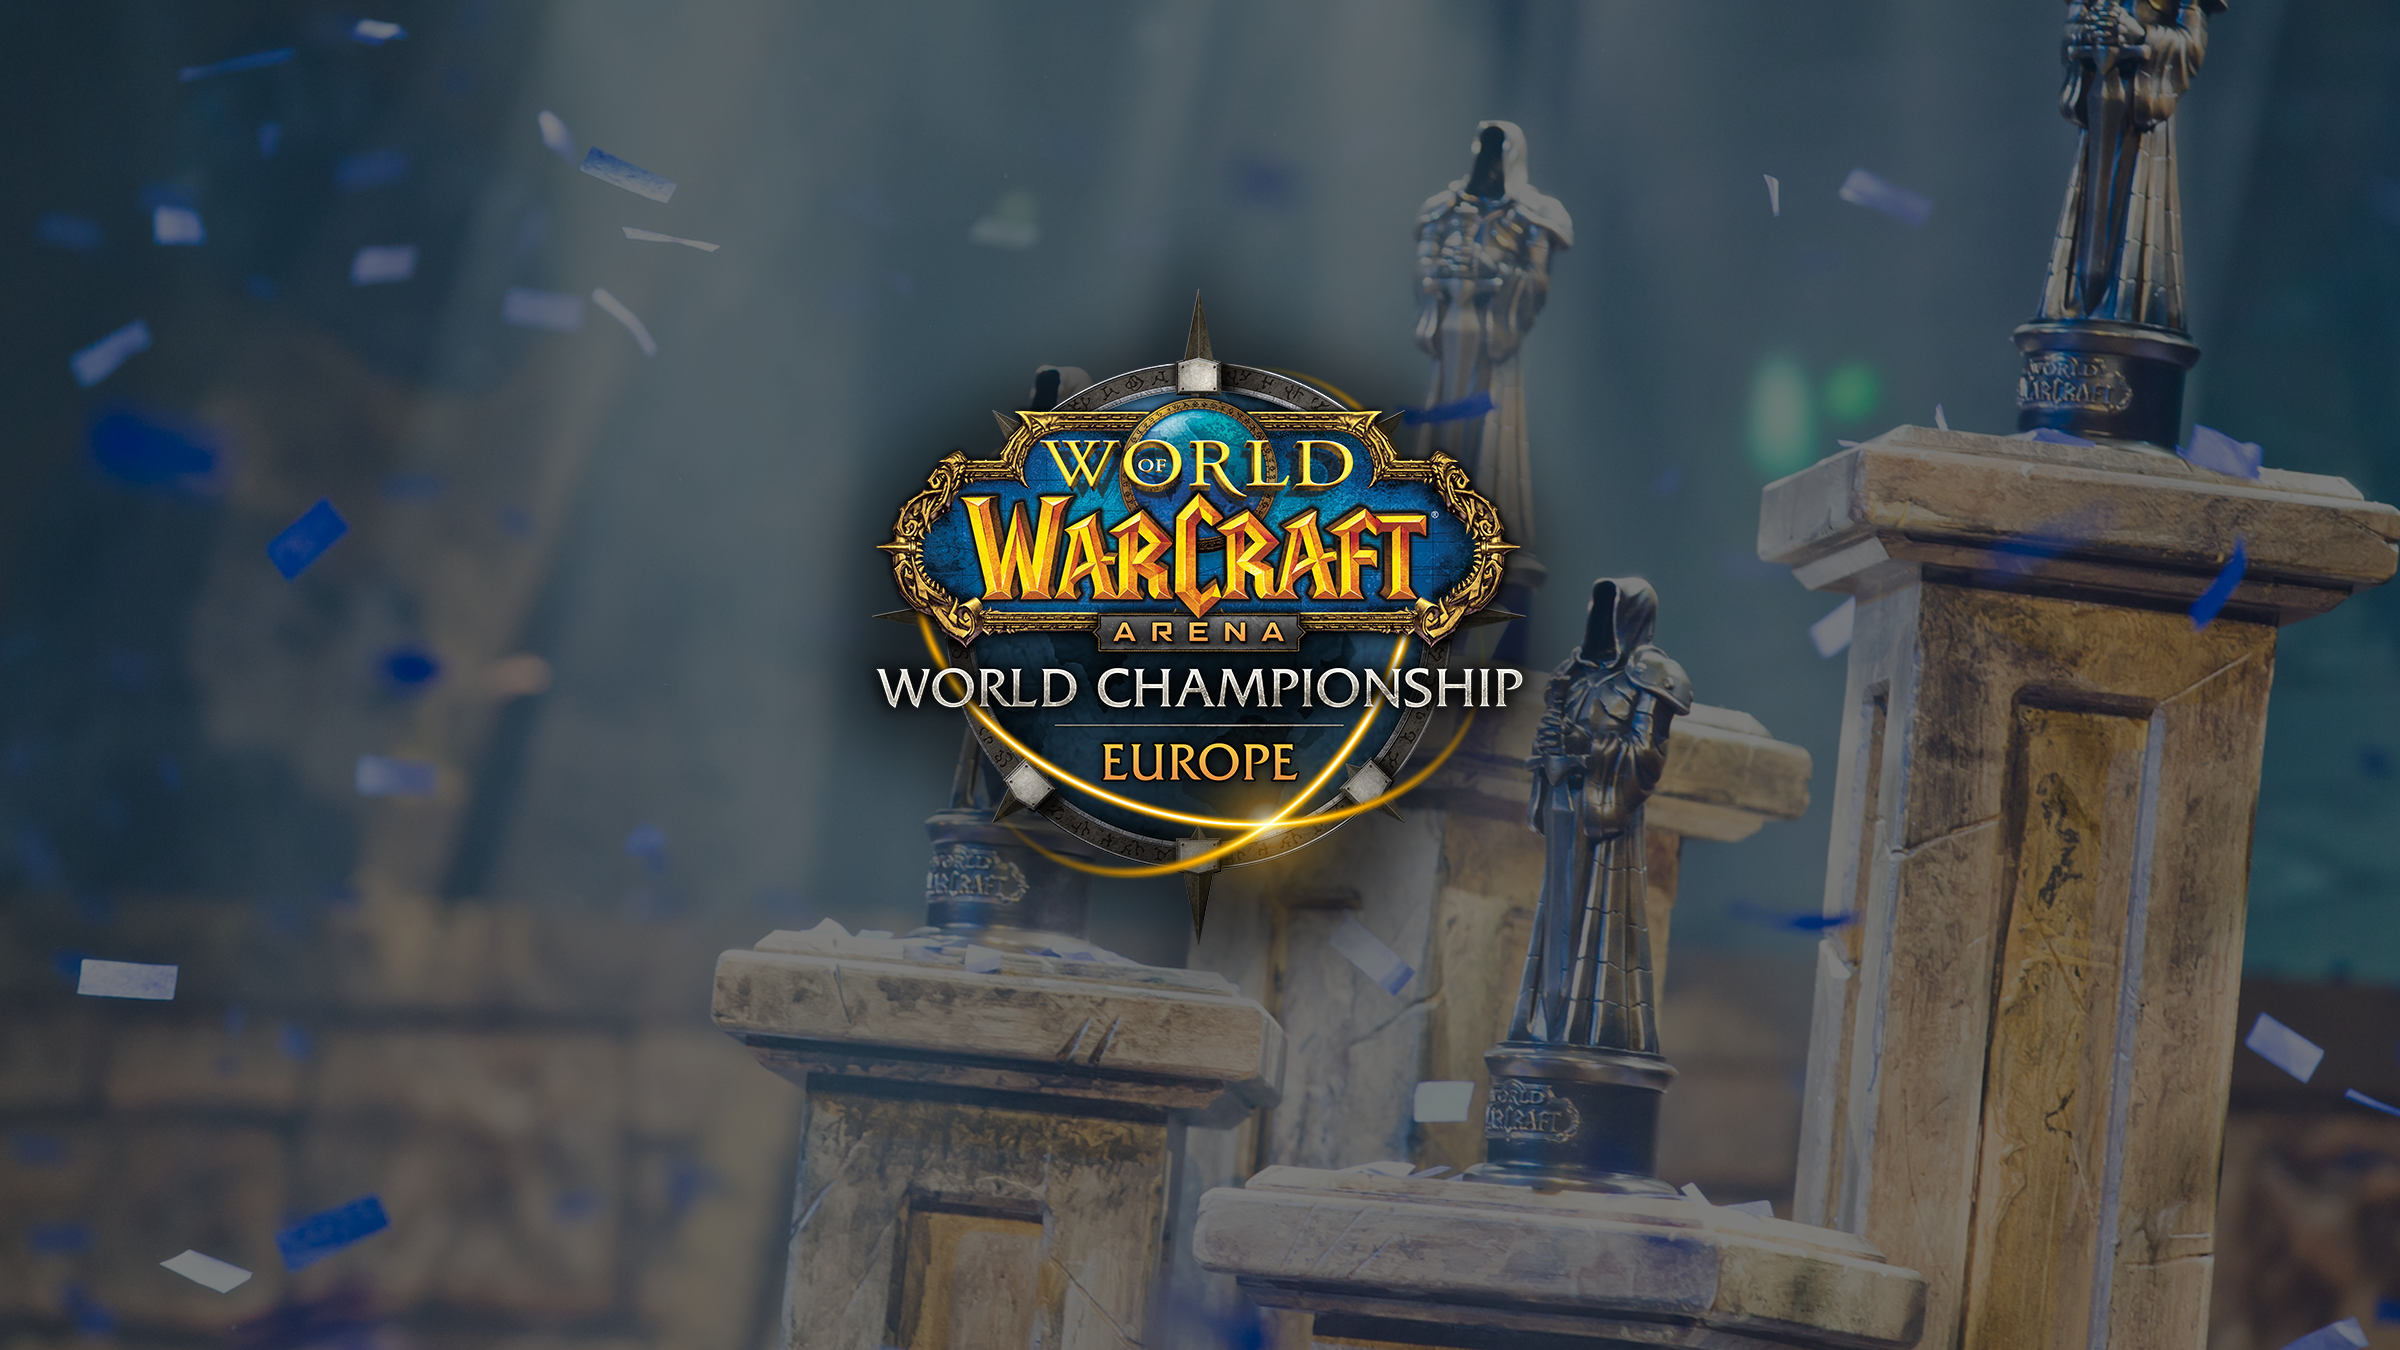 Tune in Feb. 17-18! WoW Arena Championship: European Qualifier Cup #2